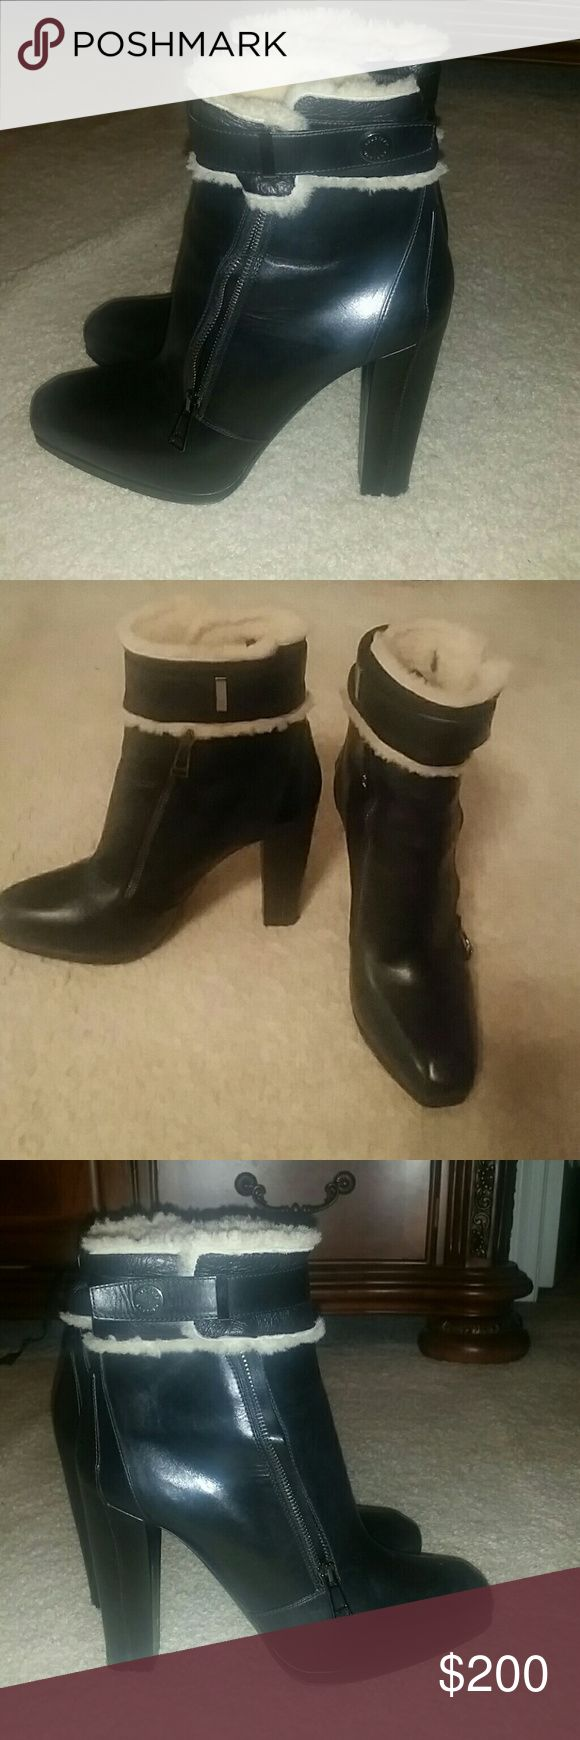 Belstaff made in Italy leather platform booties Bad azz...Belstaff England real leather and real sheep fur at ankle area!!! Platform boots, leather lined and leather soles...size 39 europe best fits an 8.5 medium us shoe size..in excellent preowned condition. .. Belstaff Shoes Ankle Boots & Booties